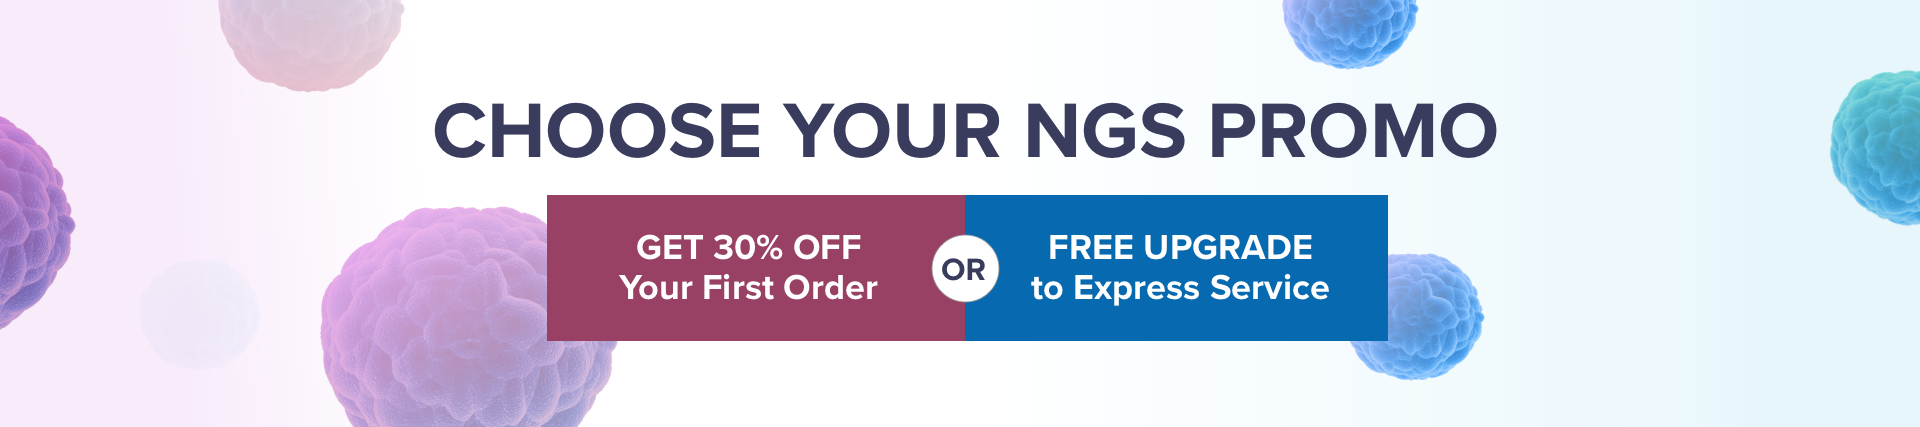 Choose_Your_NGS_Promo_header.png